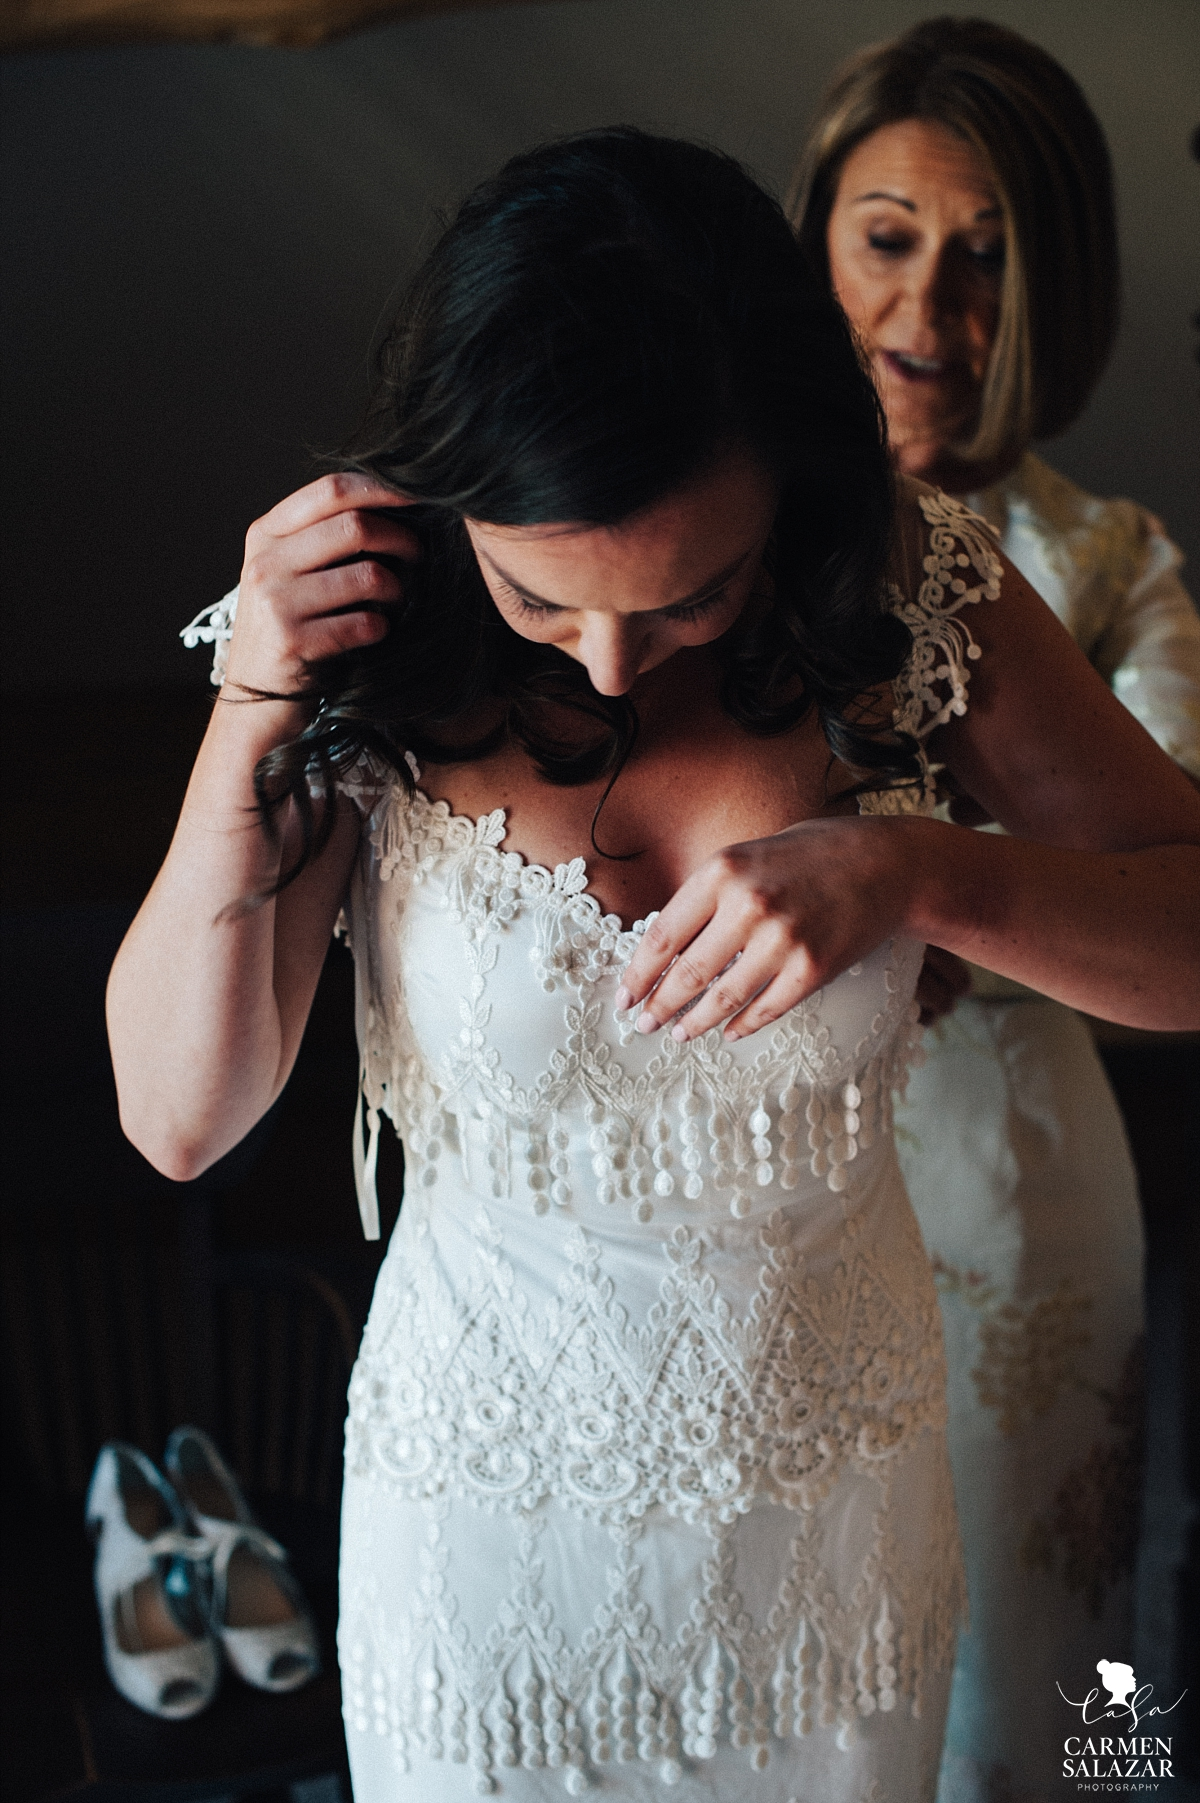 Bride getting ready in vintage lace gown - Carmen Salazar